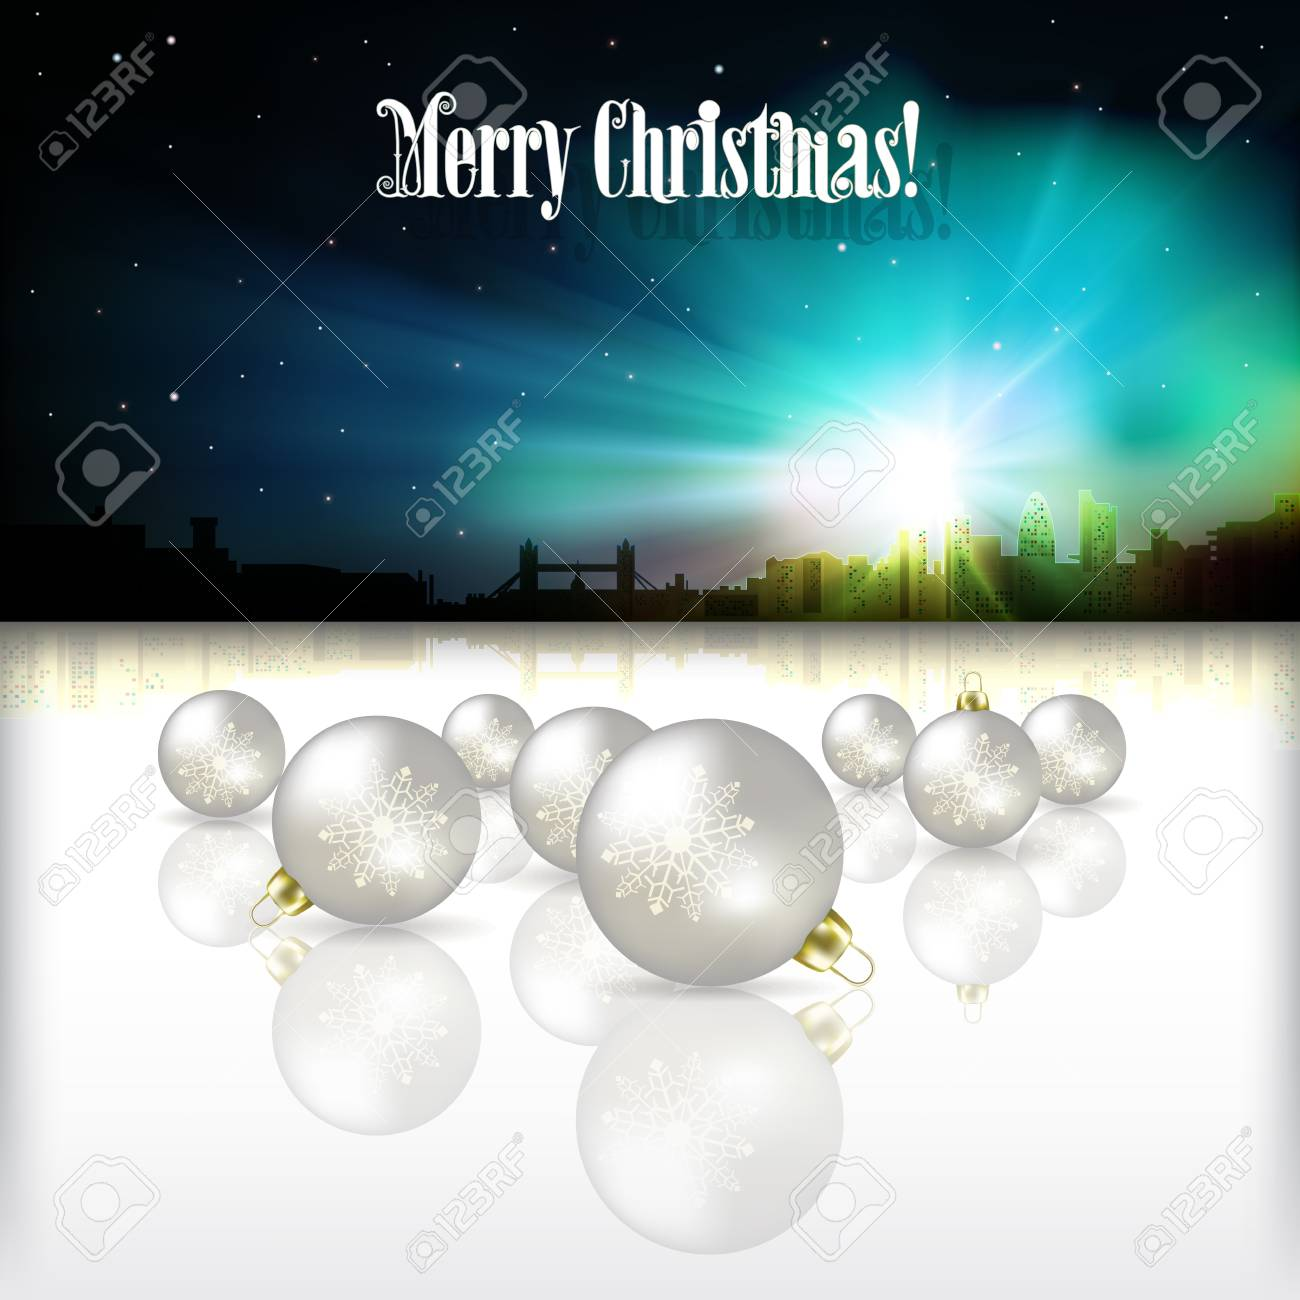 Abstract celebration background with silhouette of London and white Christmas decorations Stock Vector - 21425714